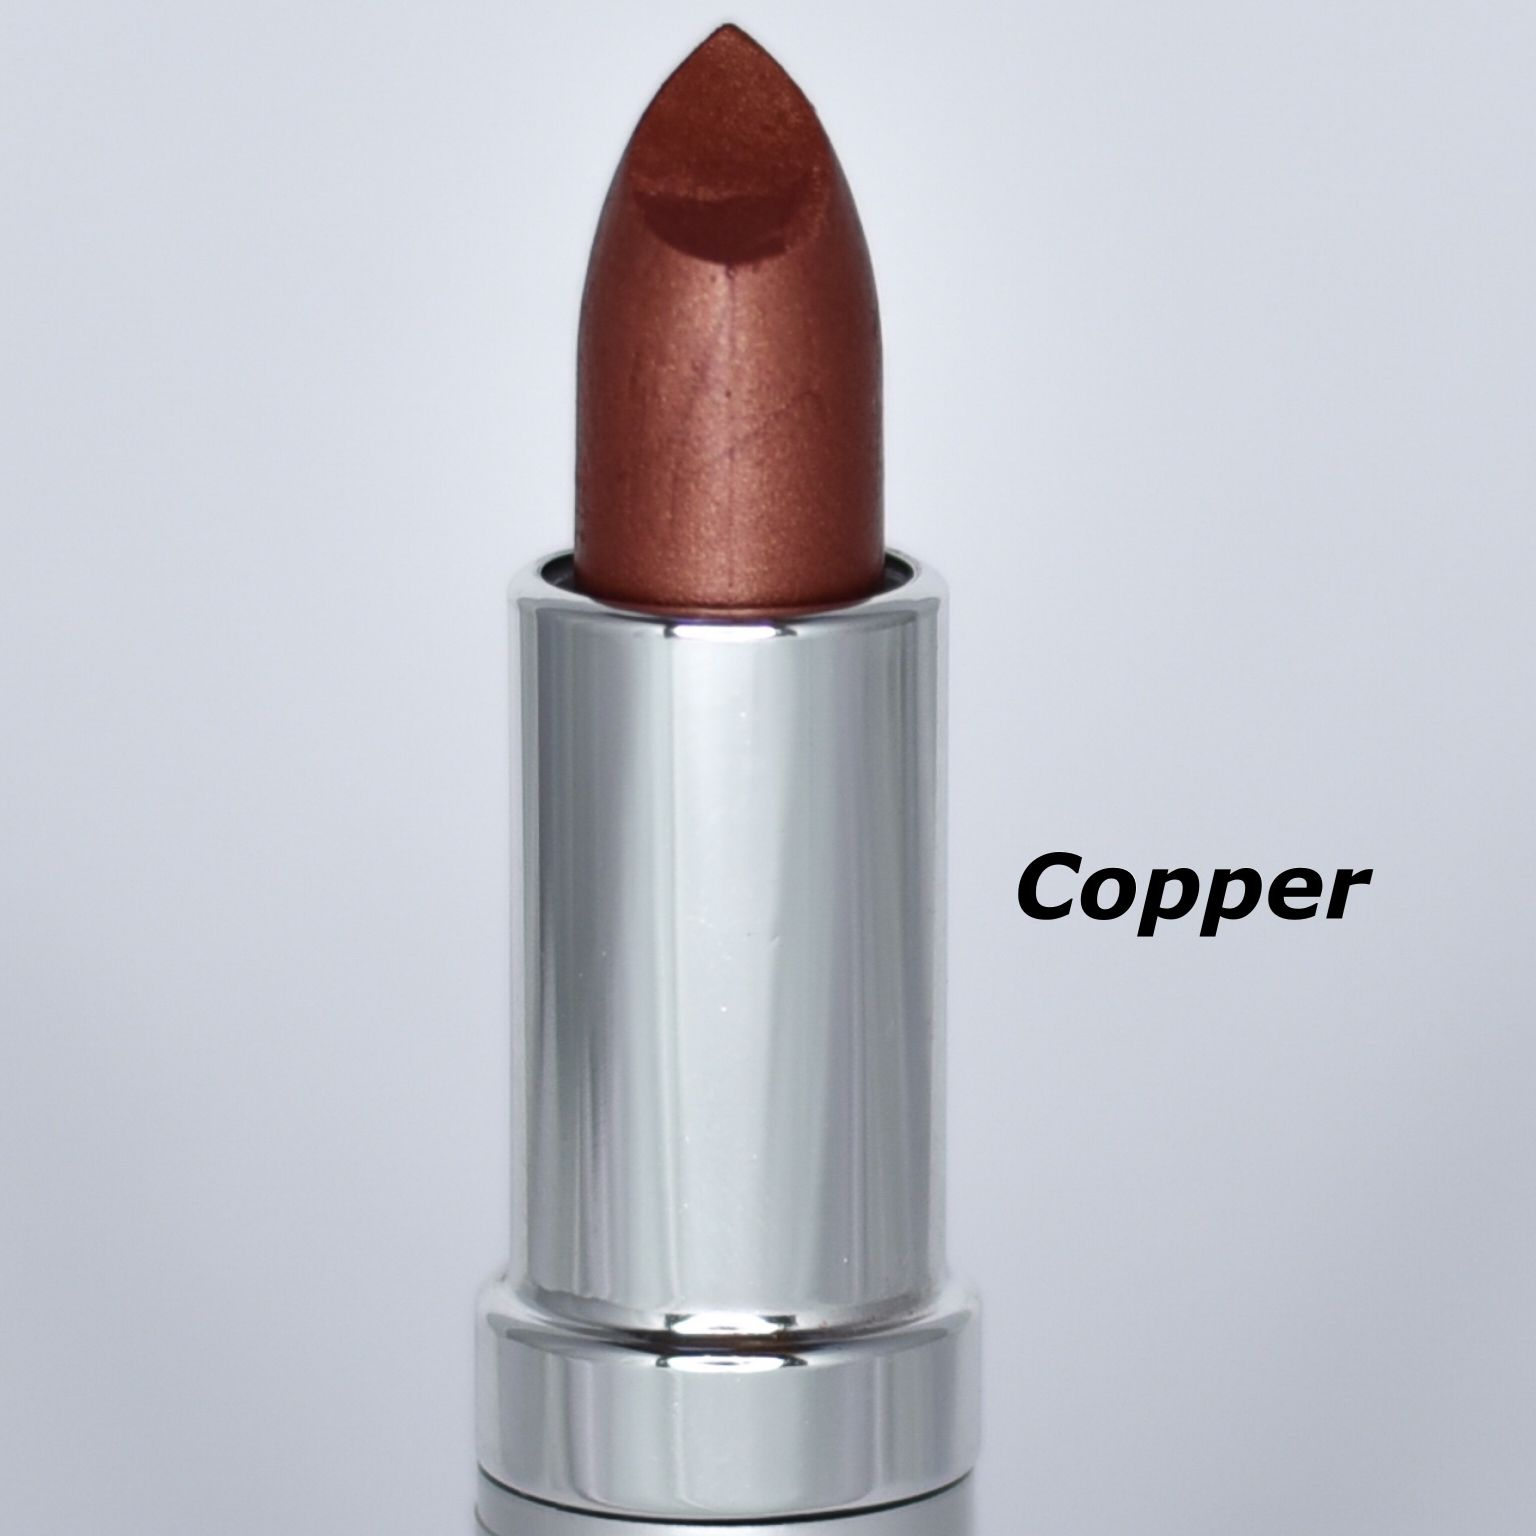 copper lipstick